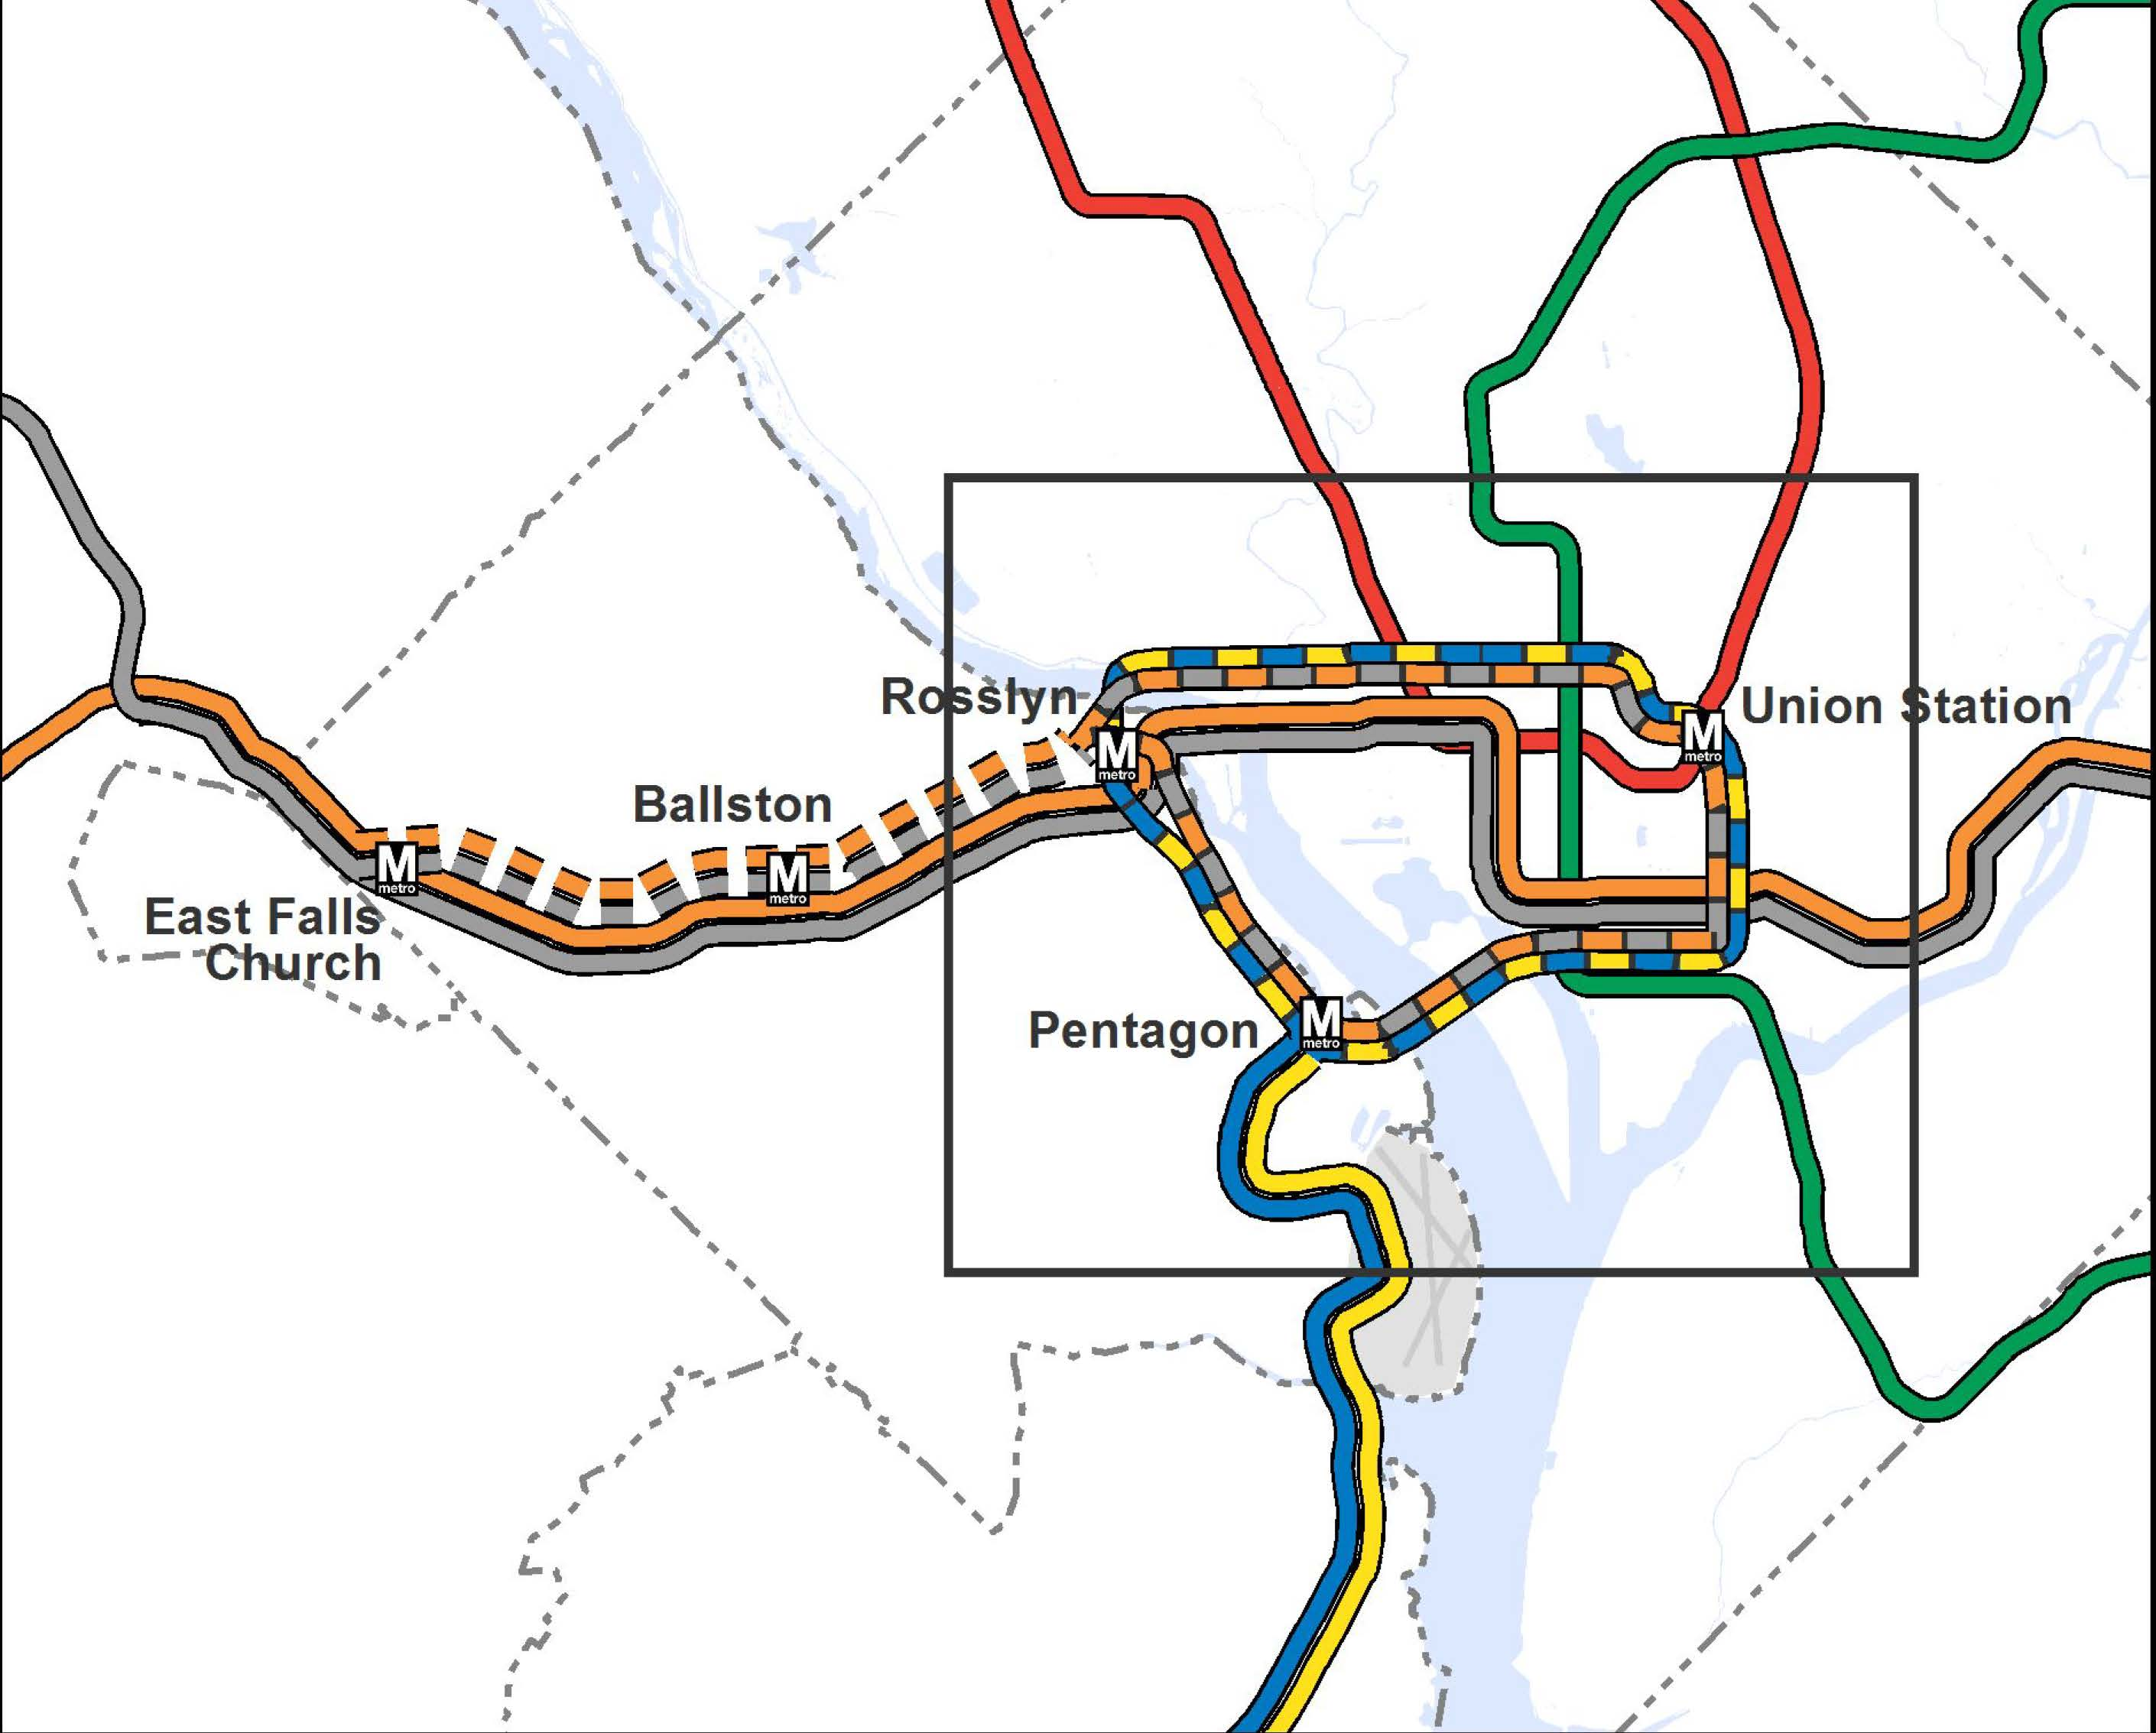 Dc Subway Map With Streets.Planitmetro Proposed 2040 Metrorail Network